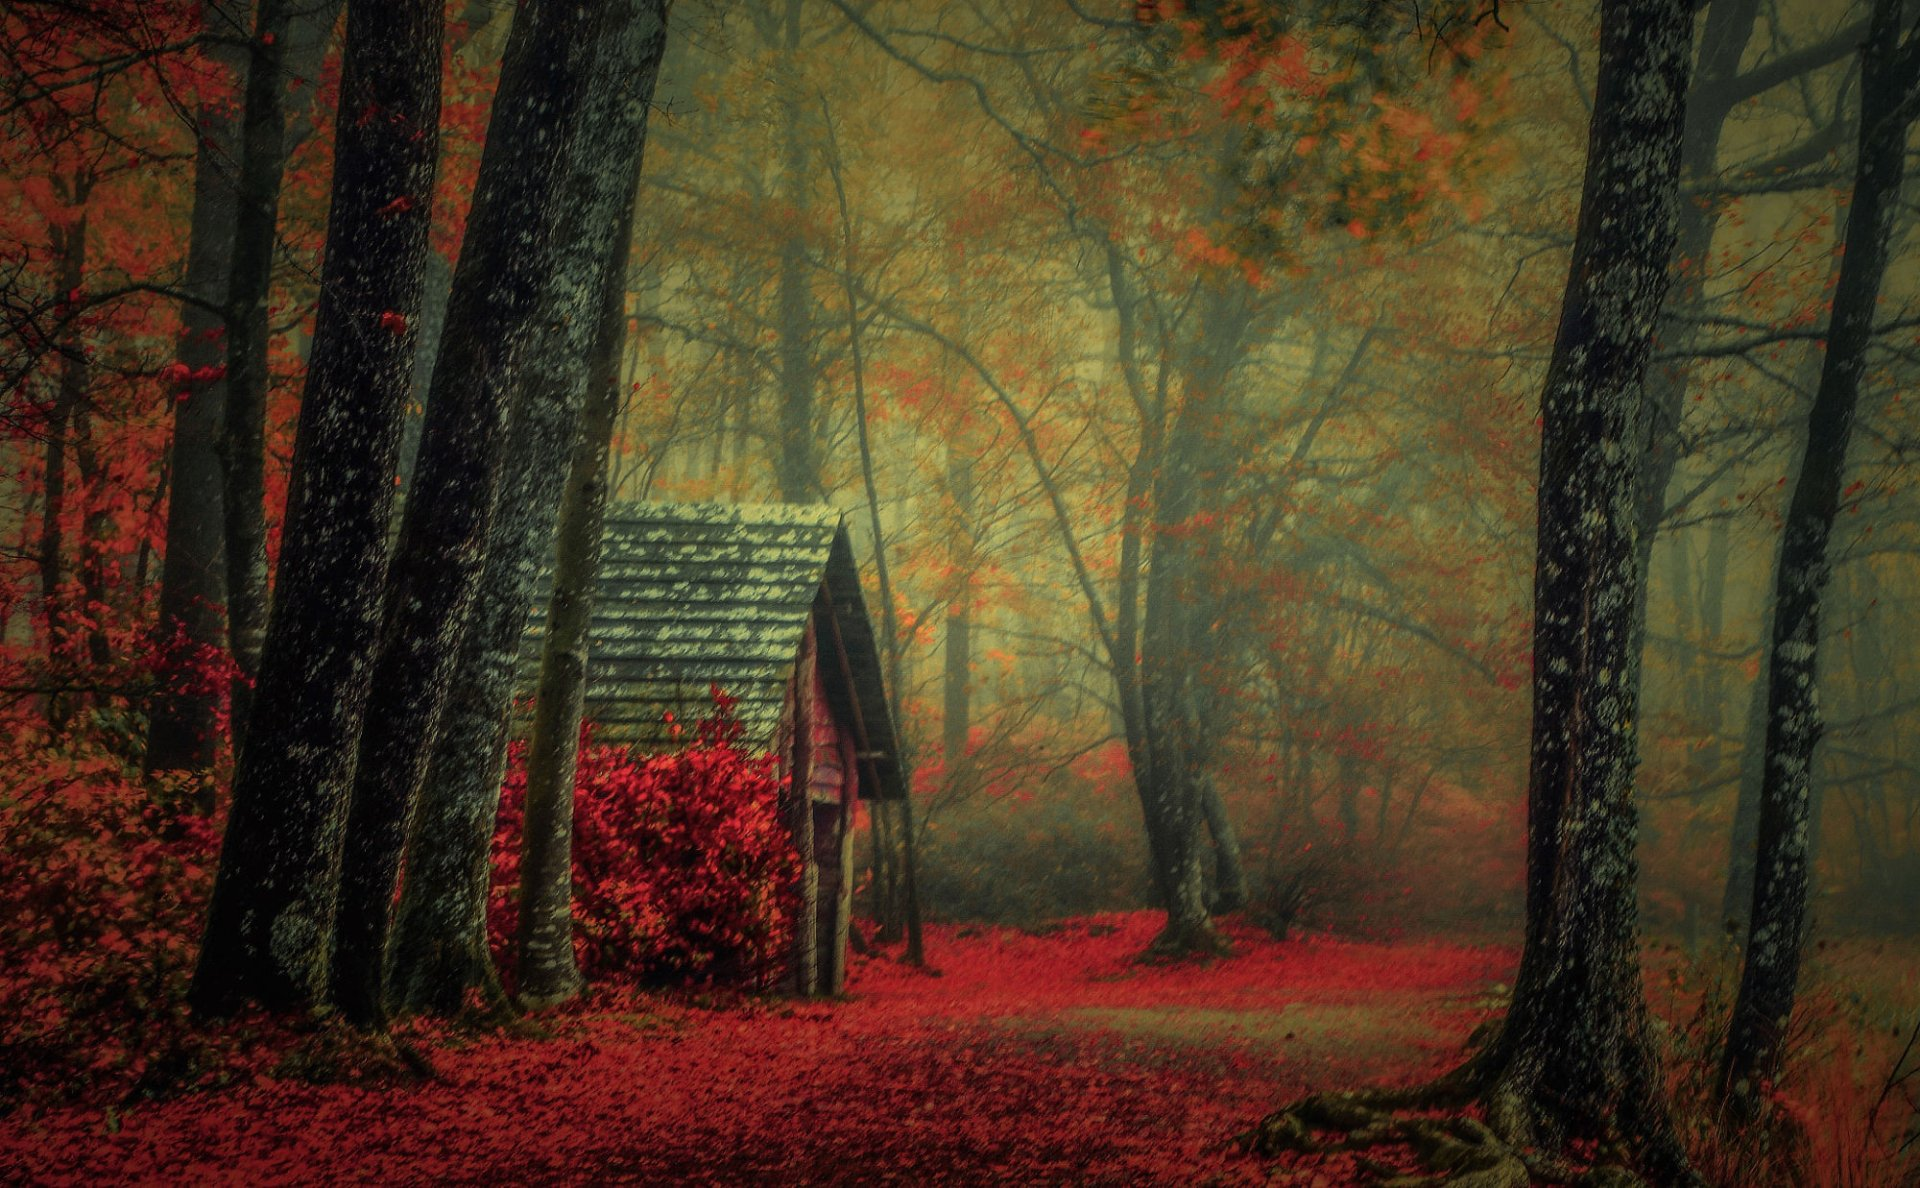 Background Wallpaper Hd Fall Fog Cabin In Autumn Forest Hd Wallpaper Background Image